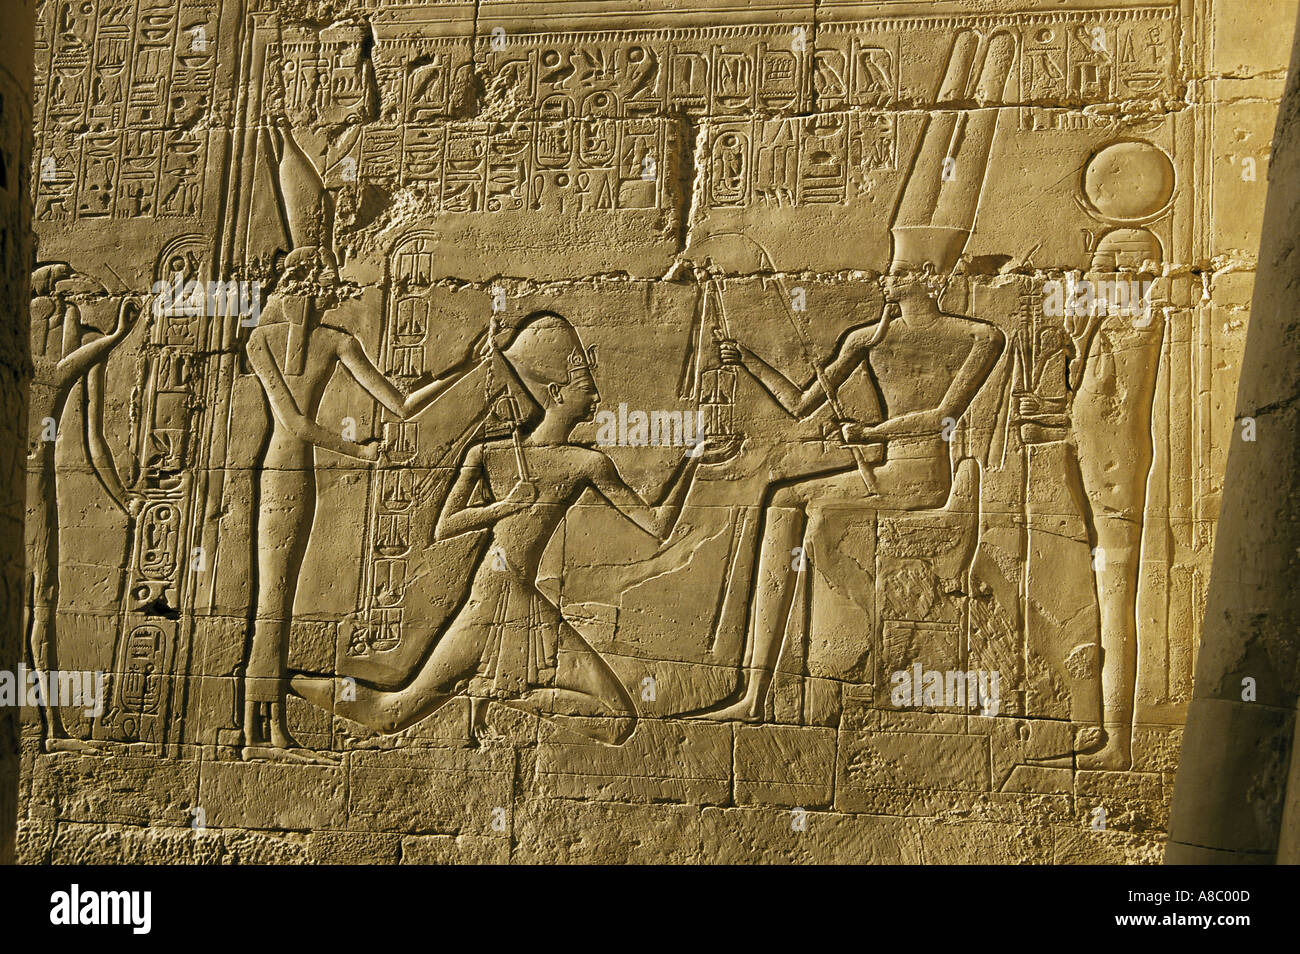 hieroglyphs amun temple at karnak egypt - Stock Image